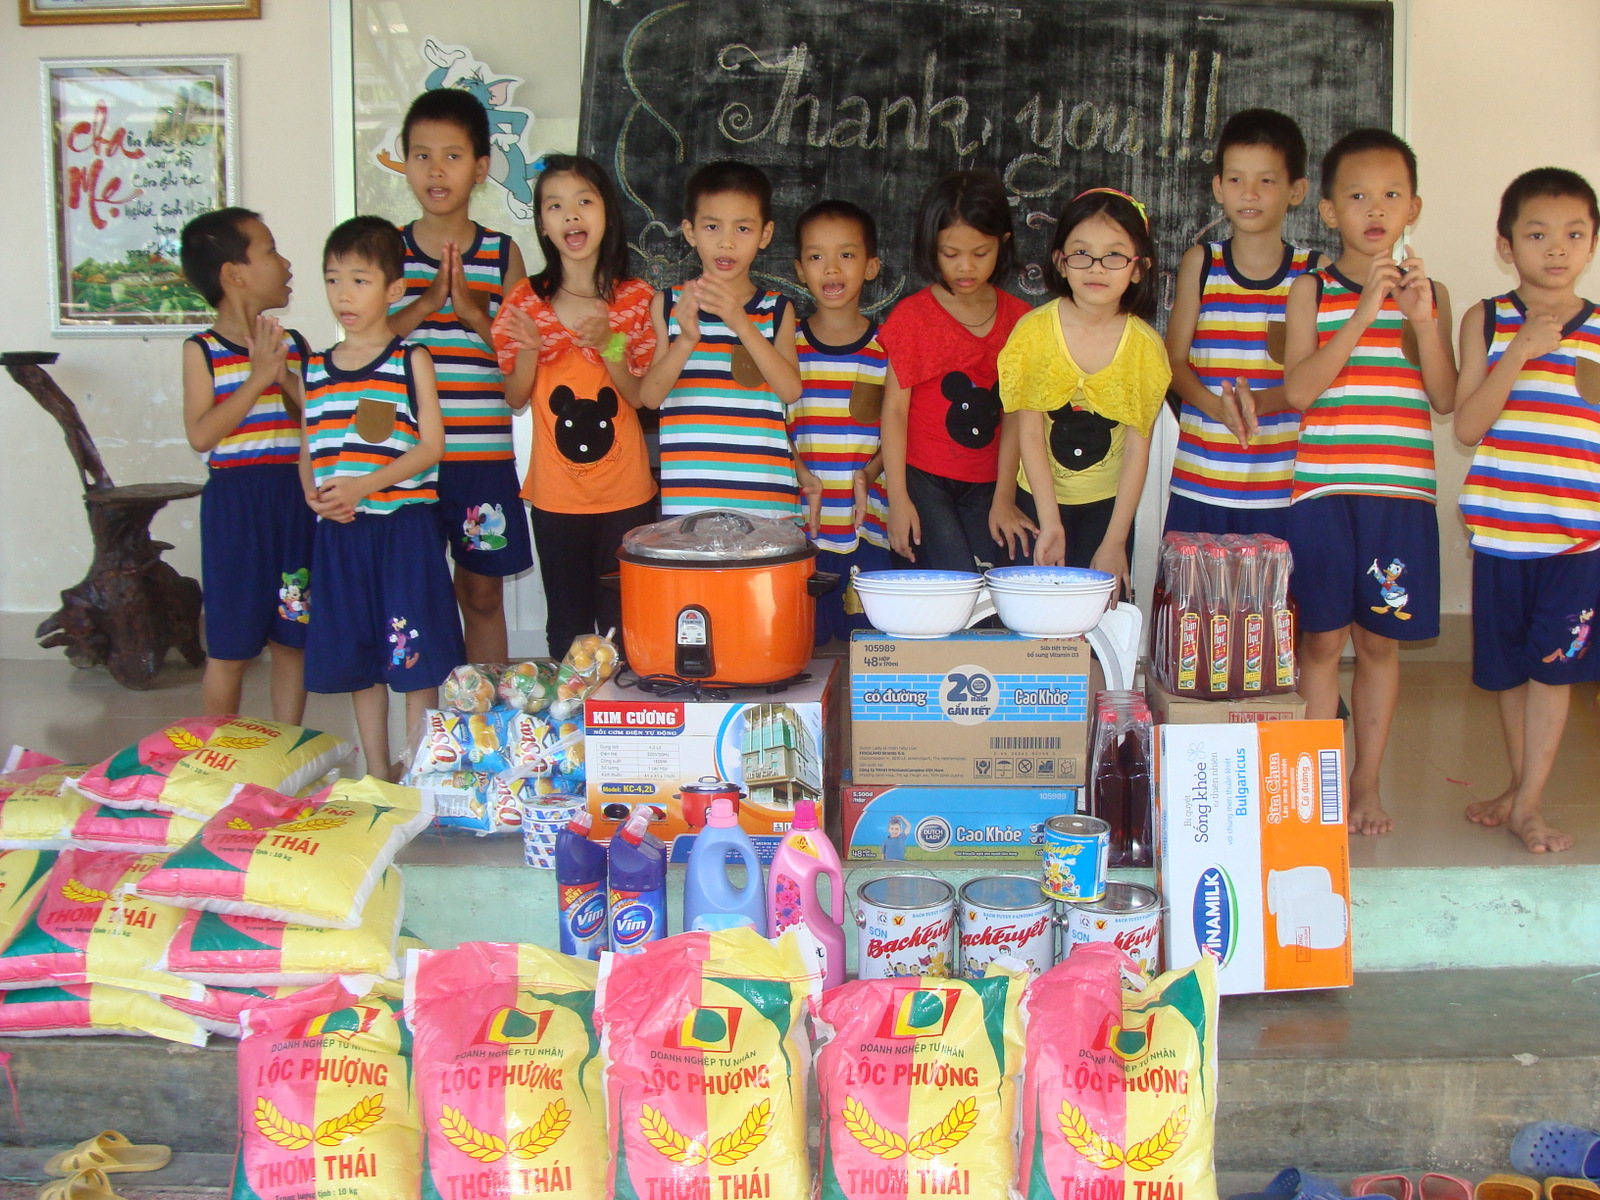 visit to orphanage Share75tweet176 sharesvisiting an orphanage has become part of the itinerary for many travellers, especially in places such as cambodia, where some orphanages even promote themselves as 'tourist attractions'.